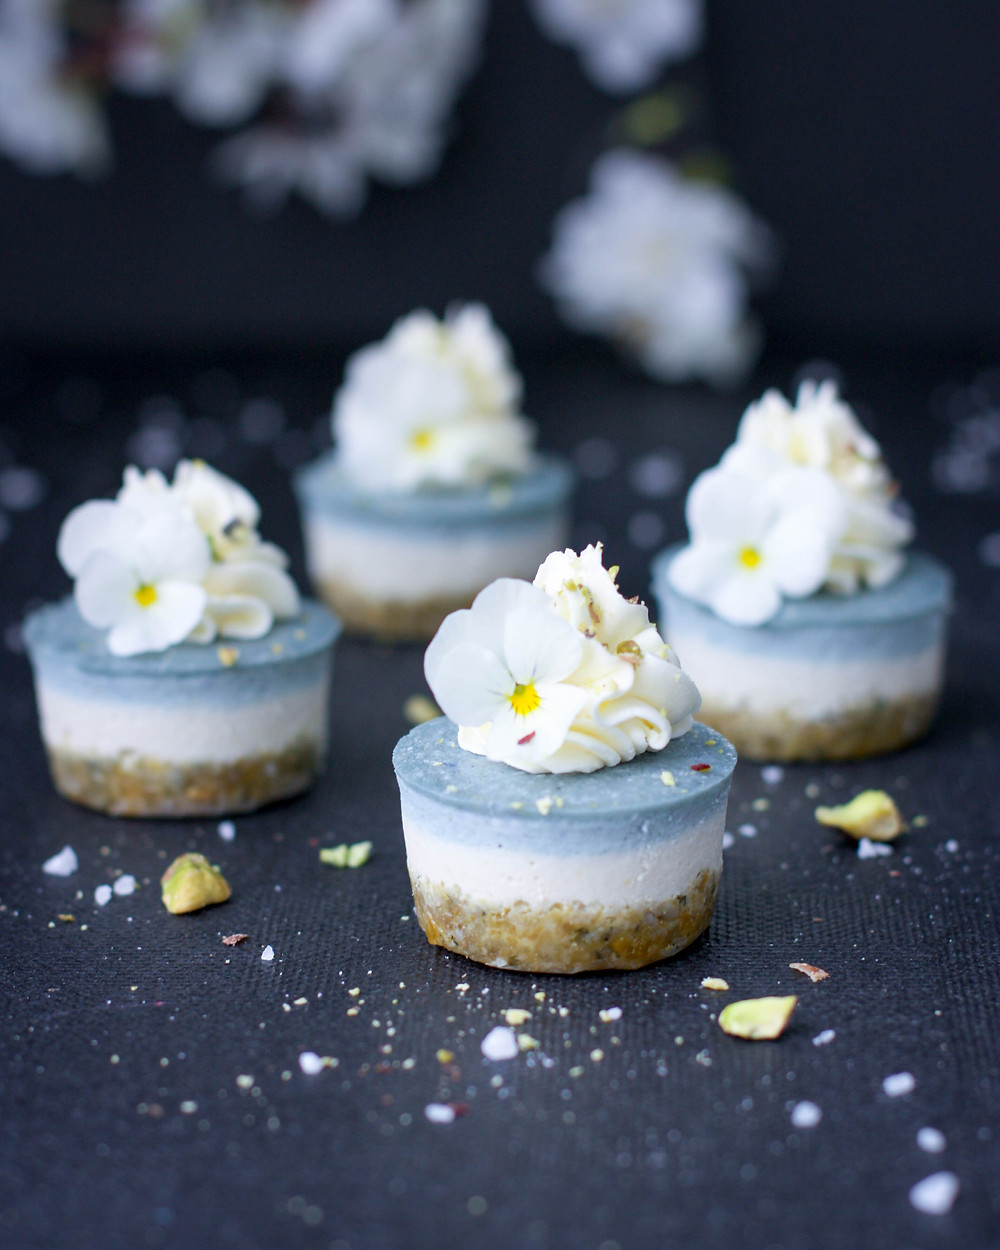 Vegan Ice Blue Lemon Cheesecake Bites